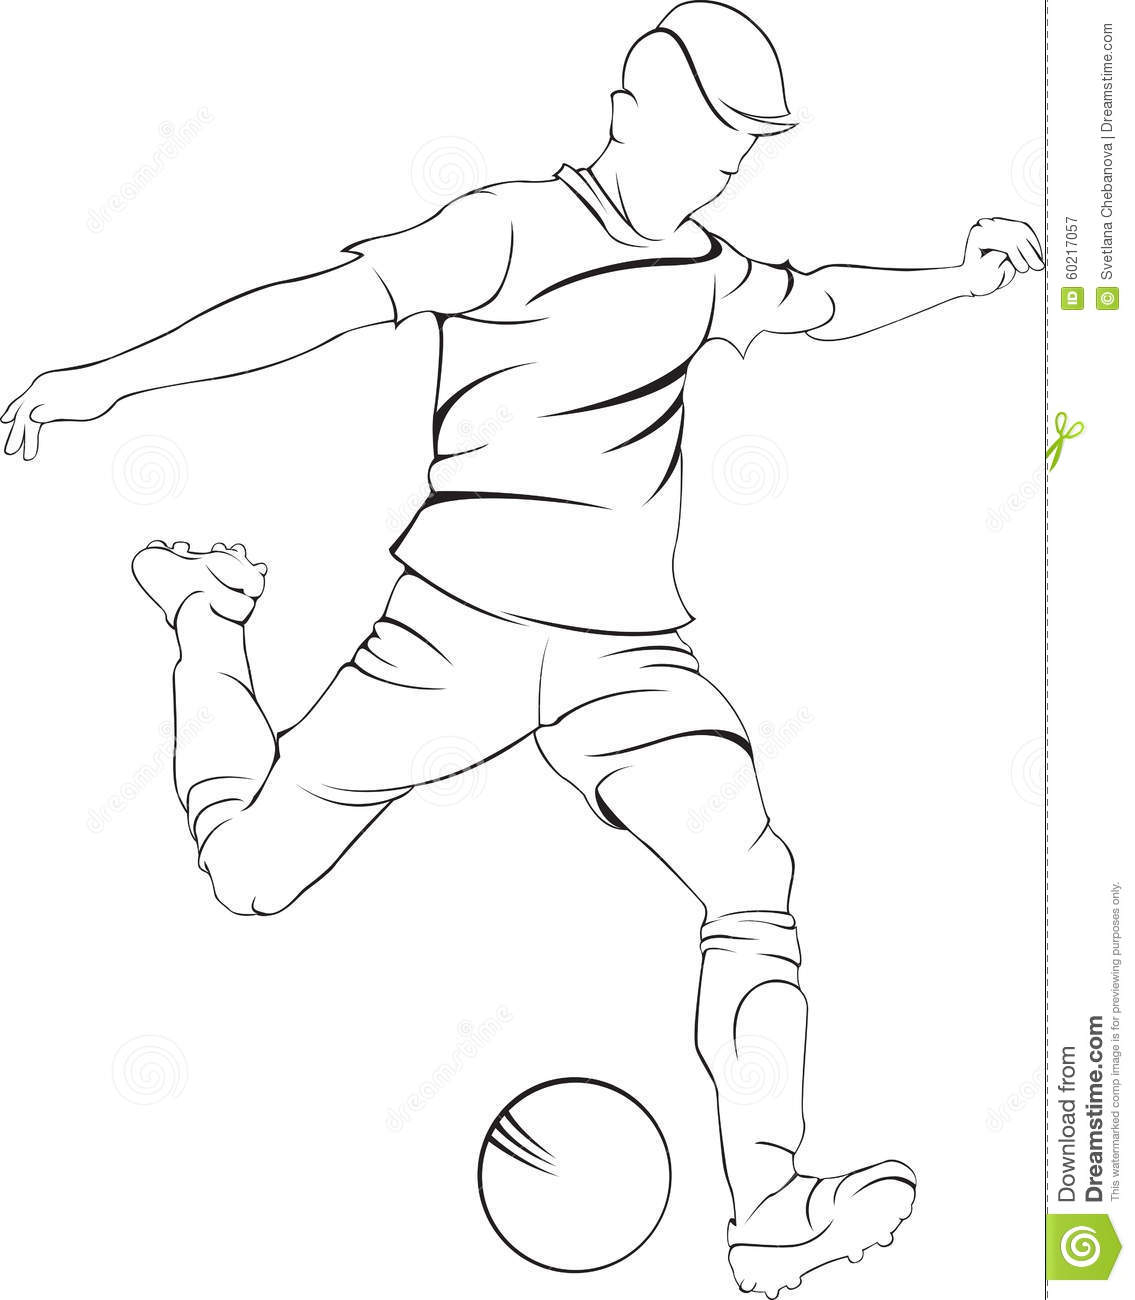 1135x1300 Soccer Player Drawing How To Draw Cartoon Soccer Player